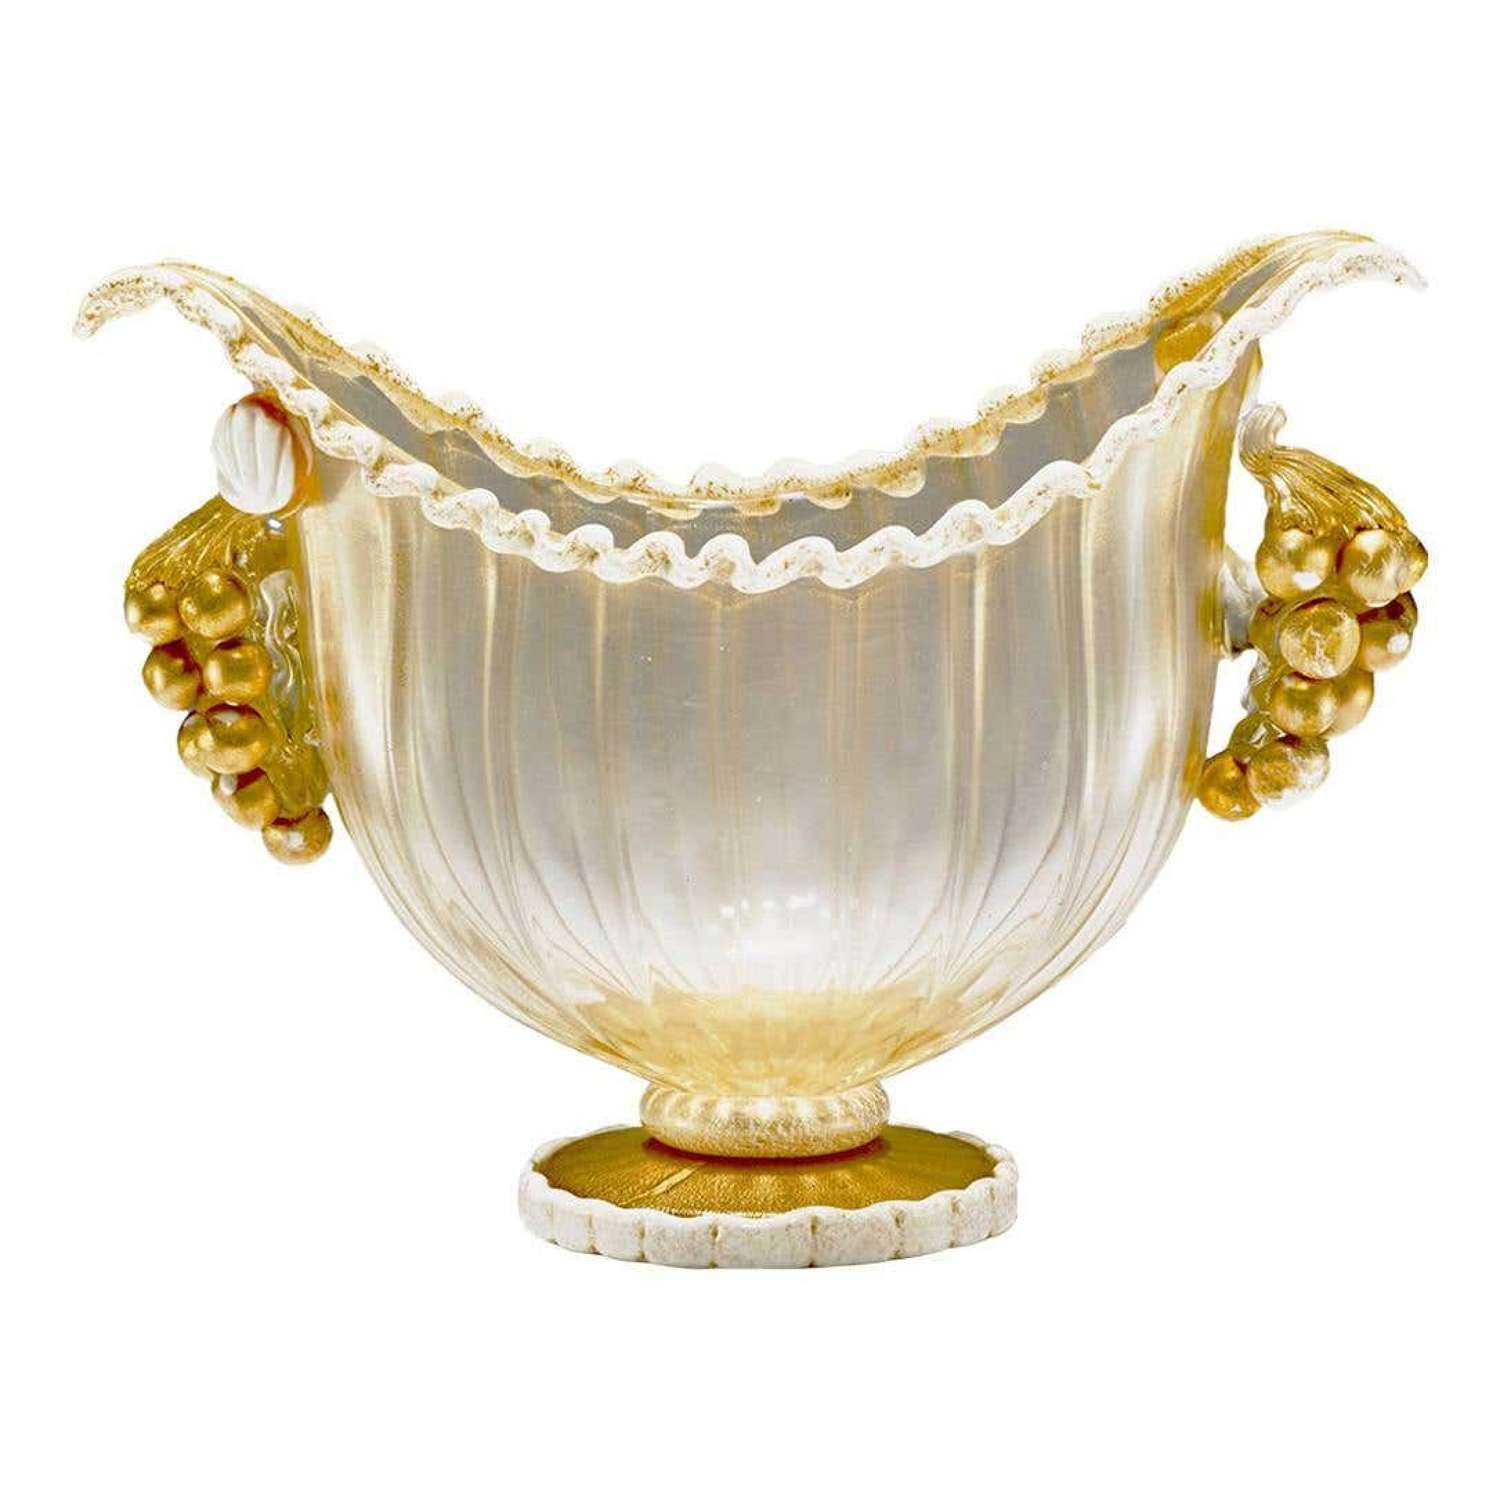 Footed Bowl Gold Leaf & Grapes, Ercole Barovier for Barovier, Toso & C